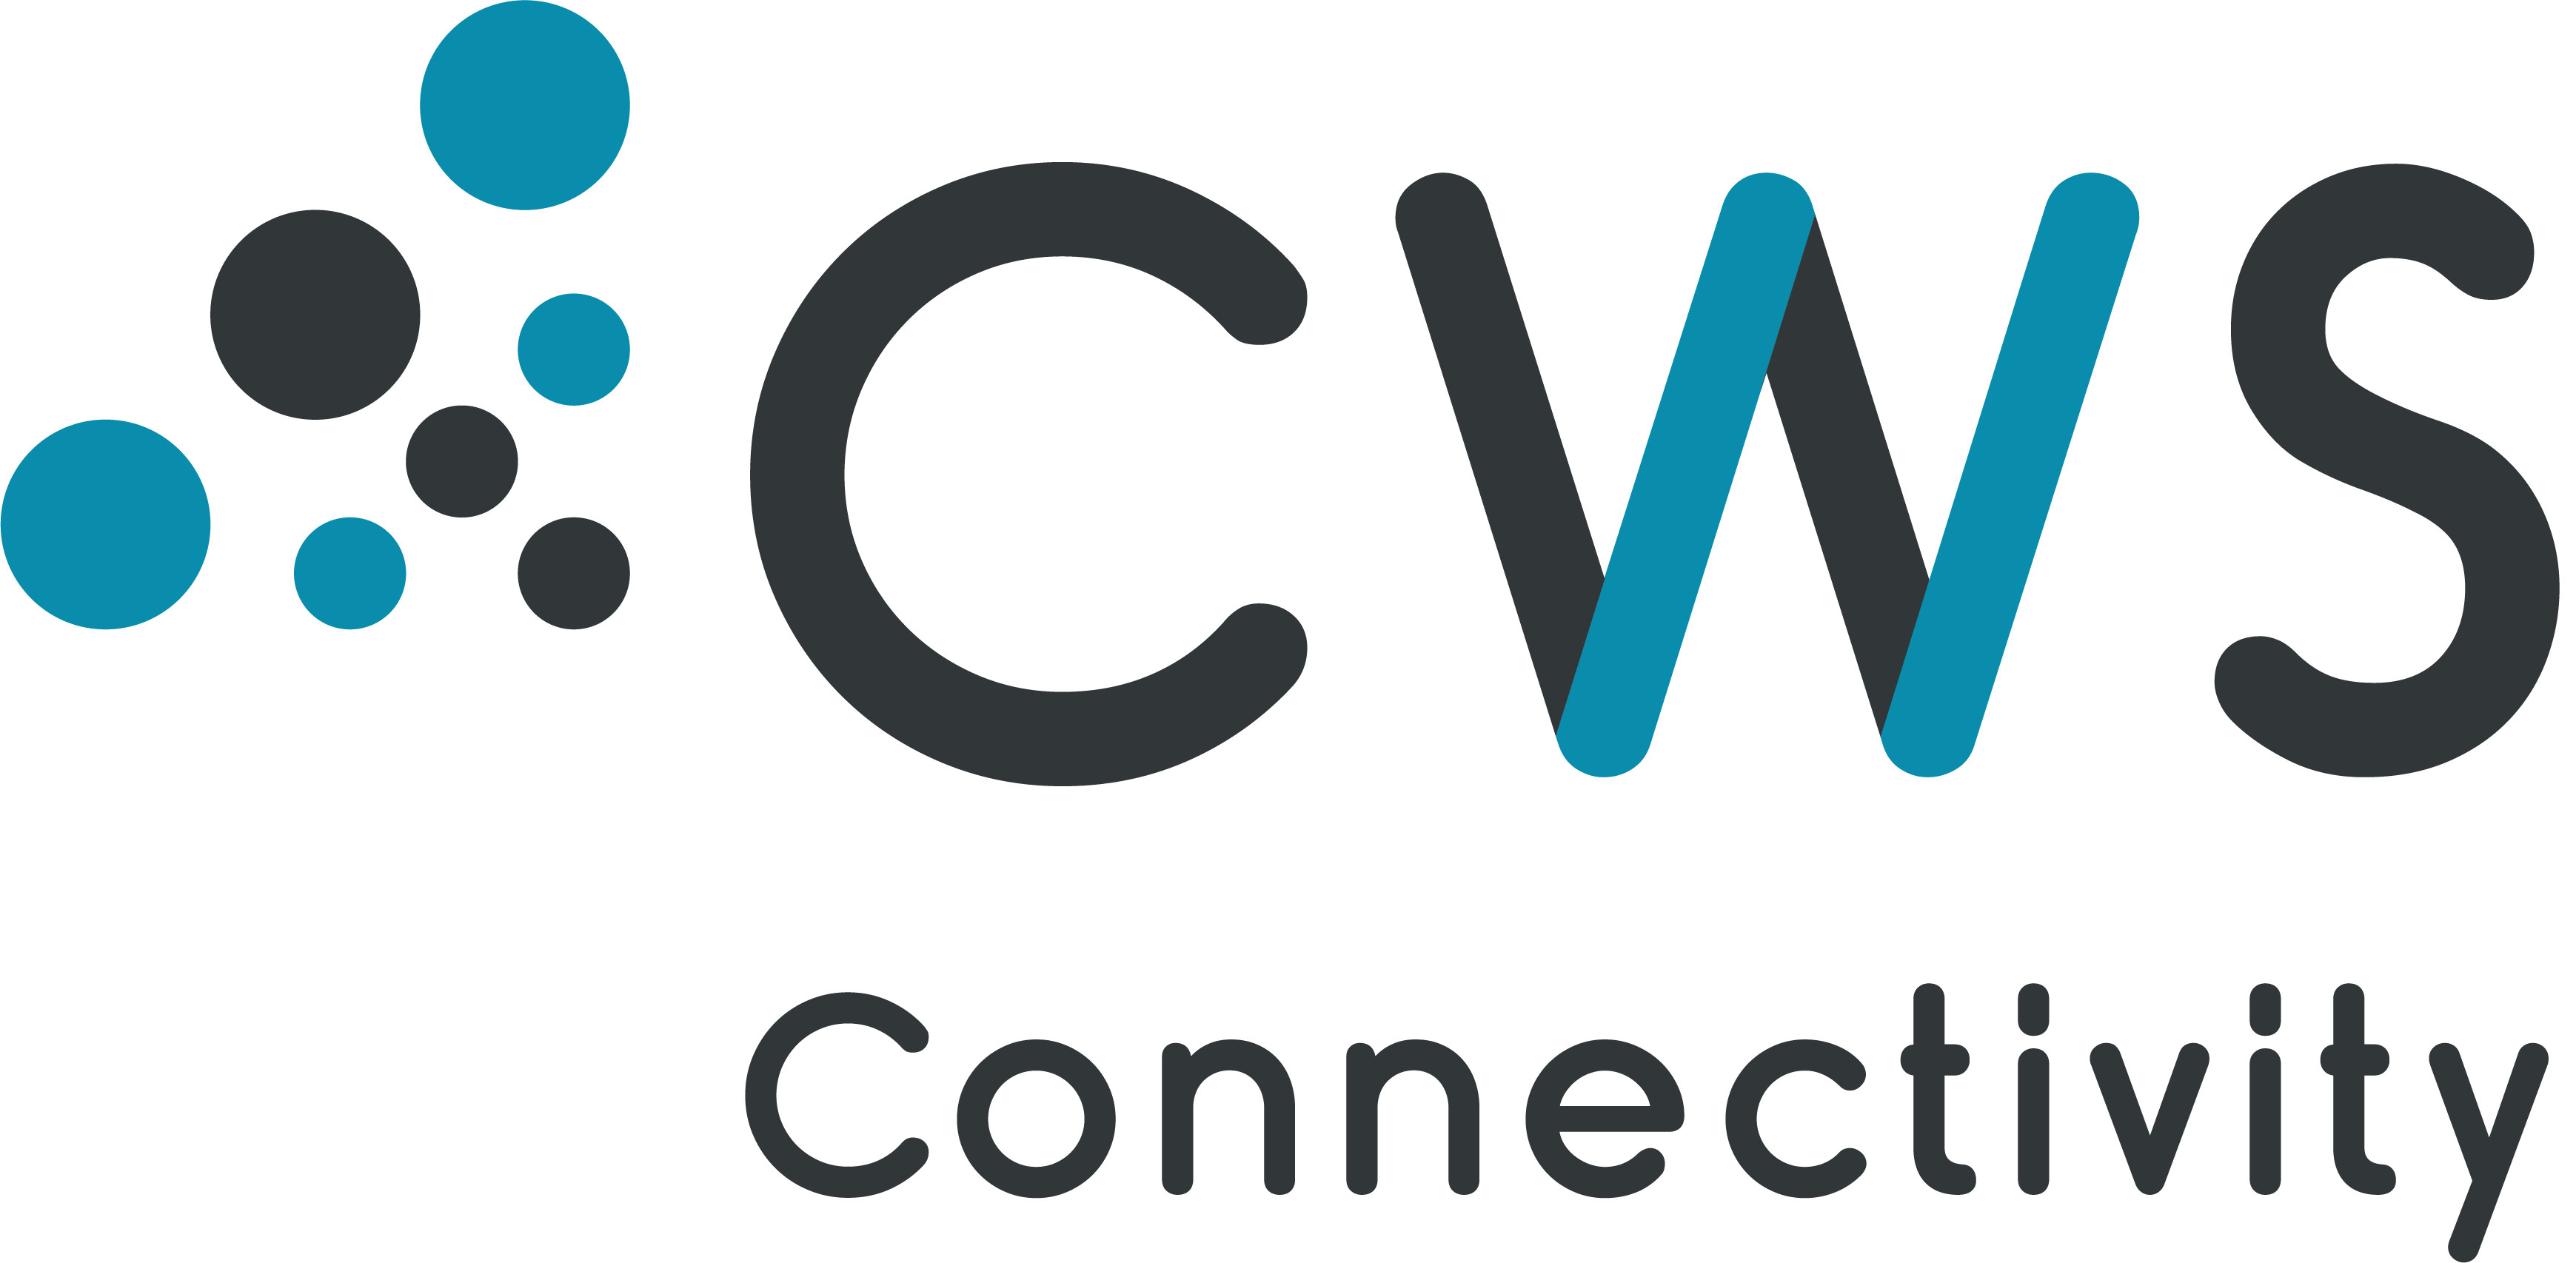 CWS Connectivity